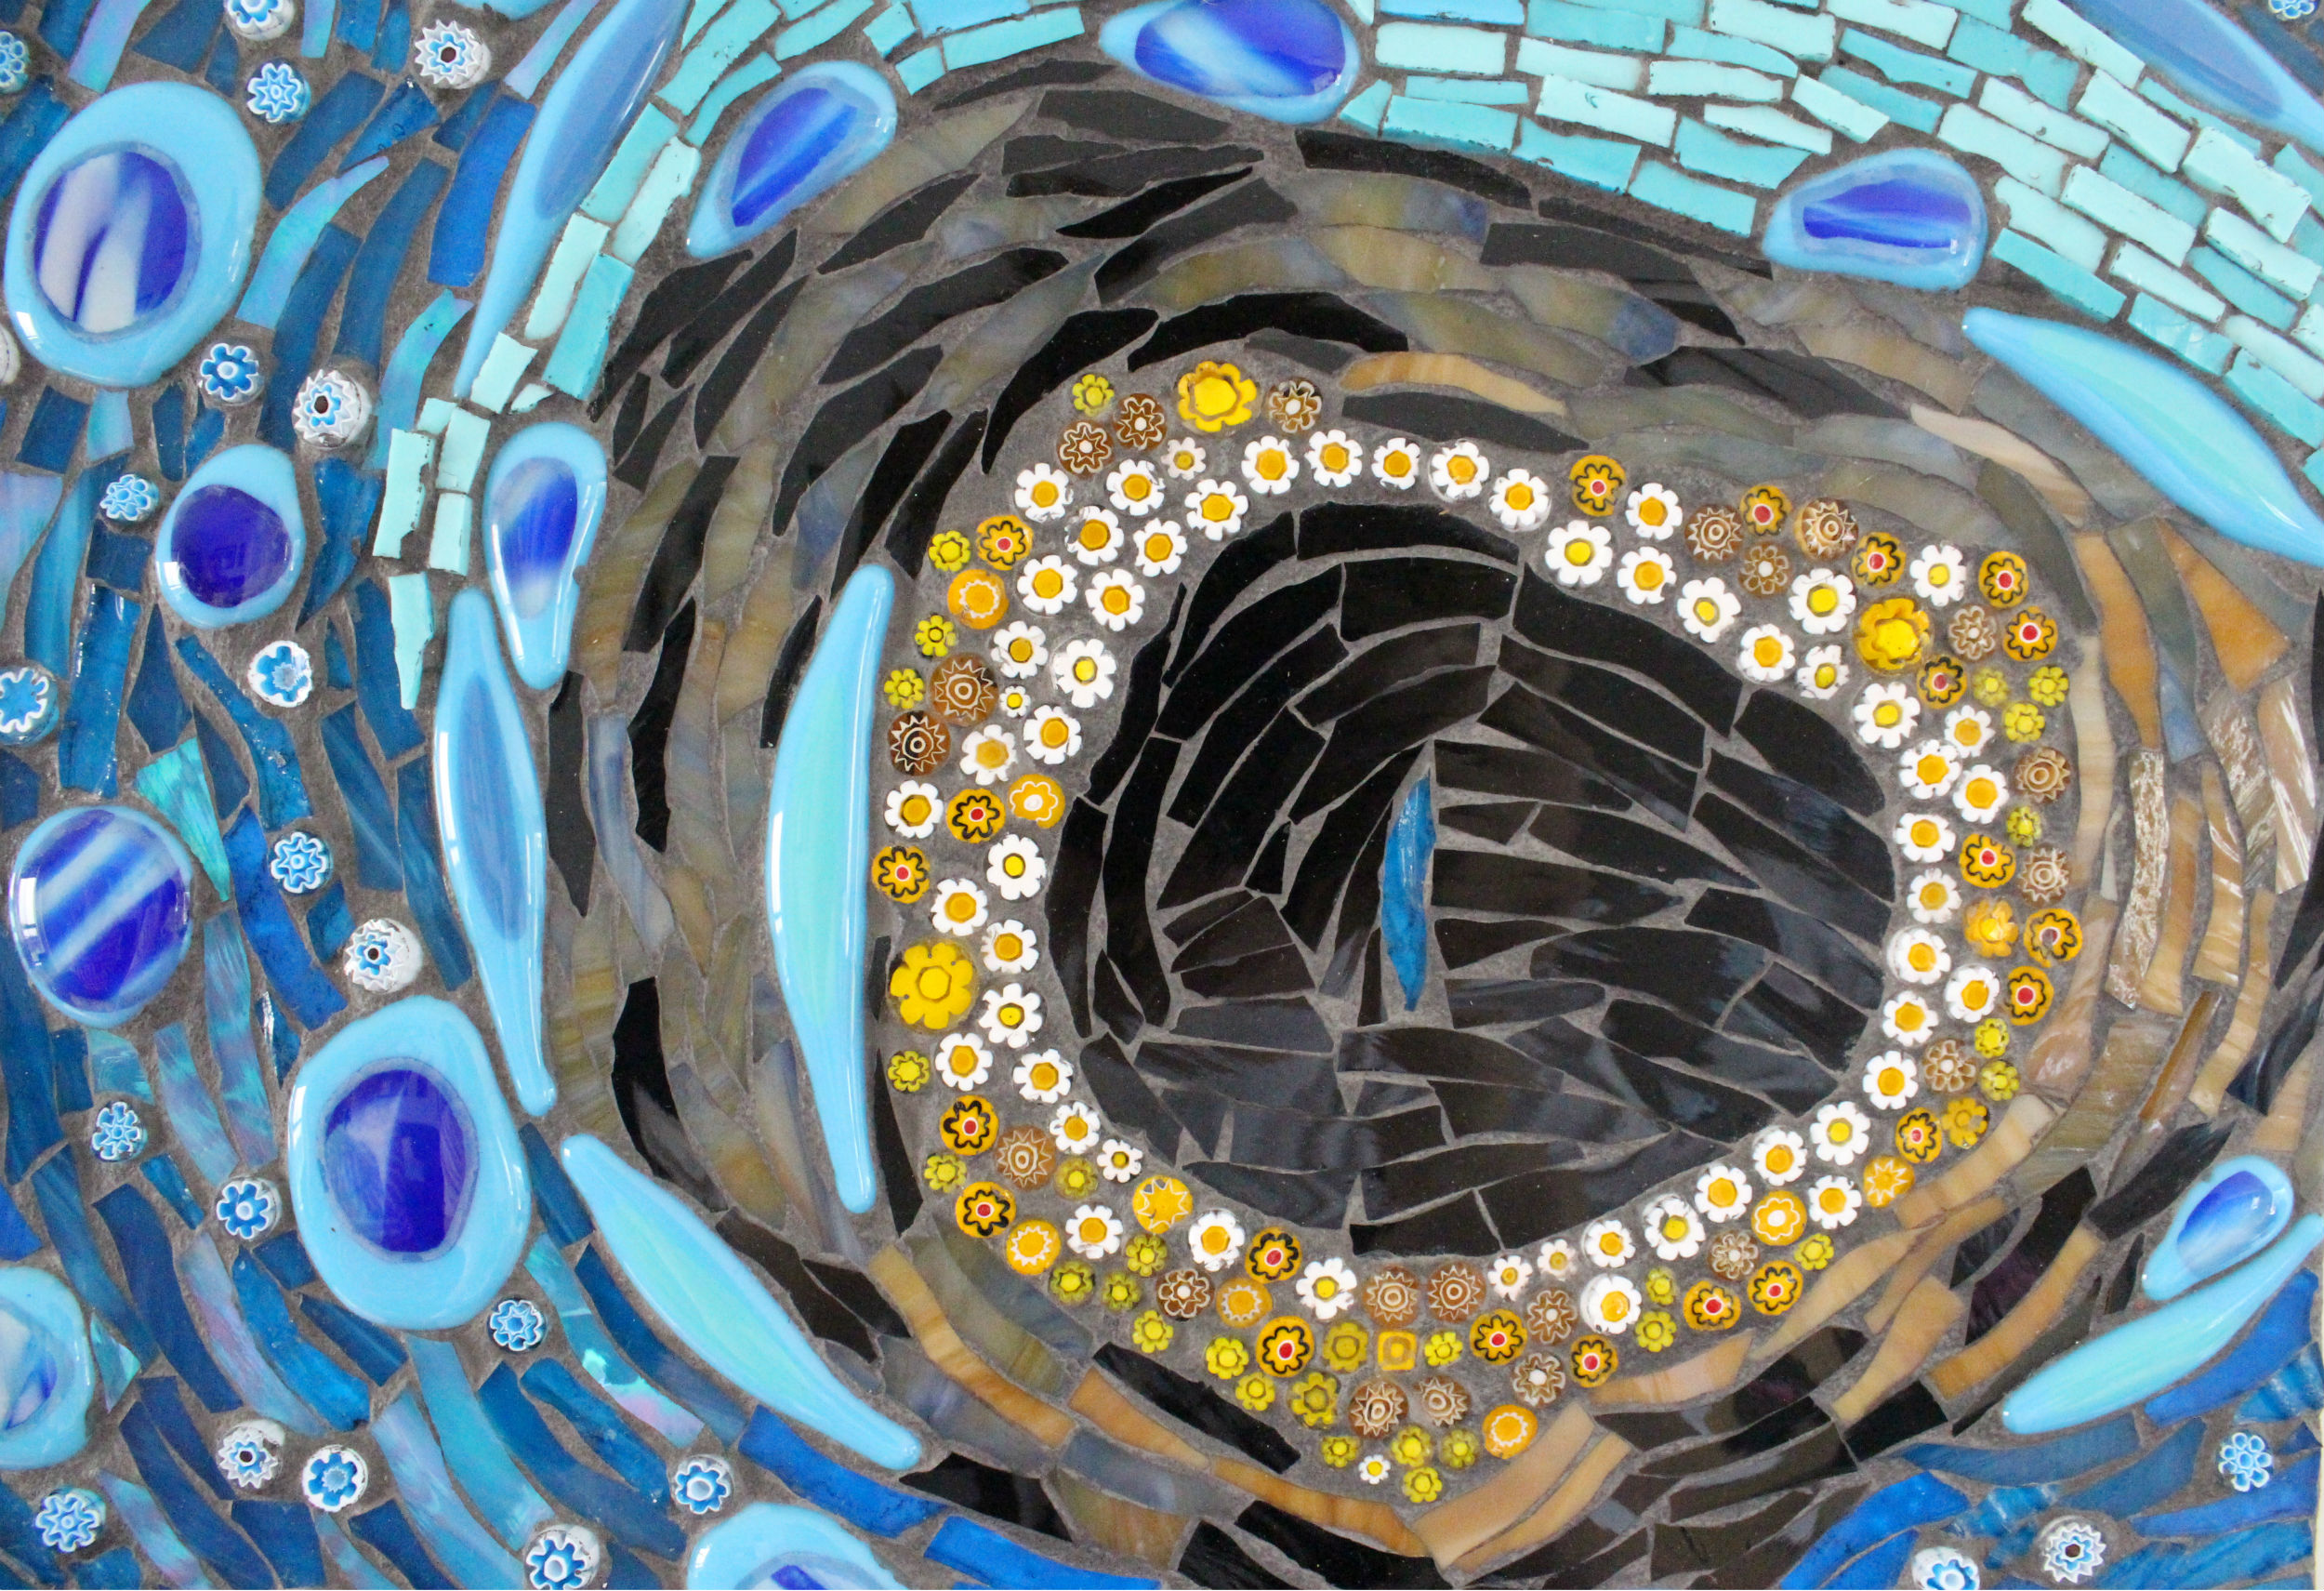 Eye of the Blue Devil Fish (Millefiori, Stained Glass, Glass Fusions, Smalti)